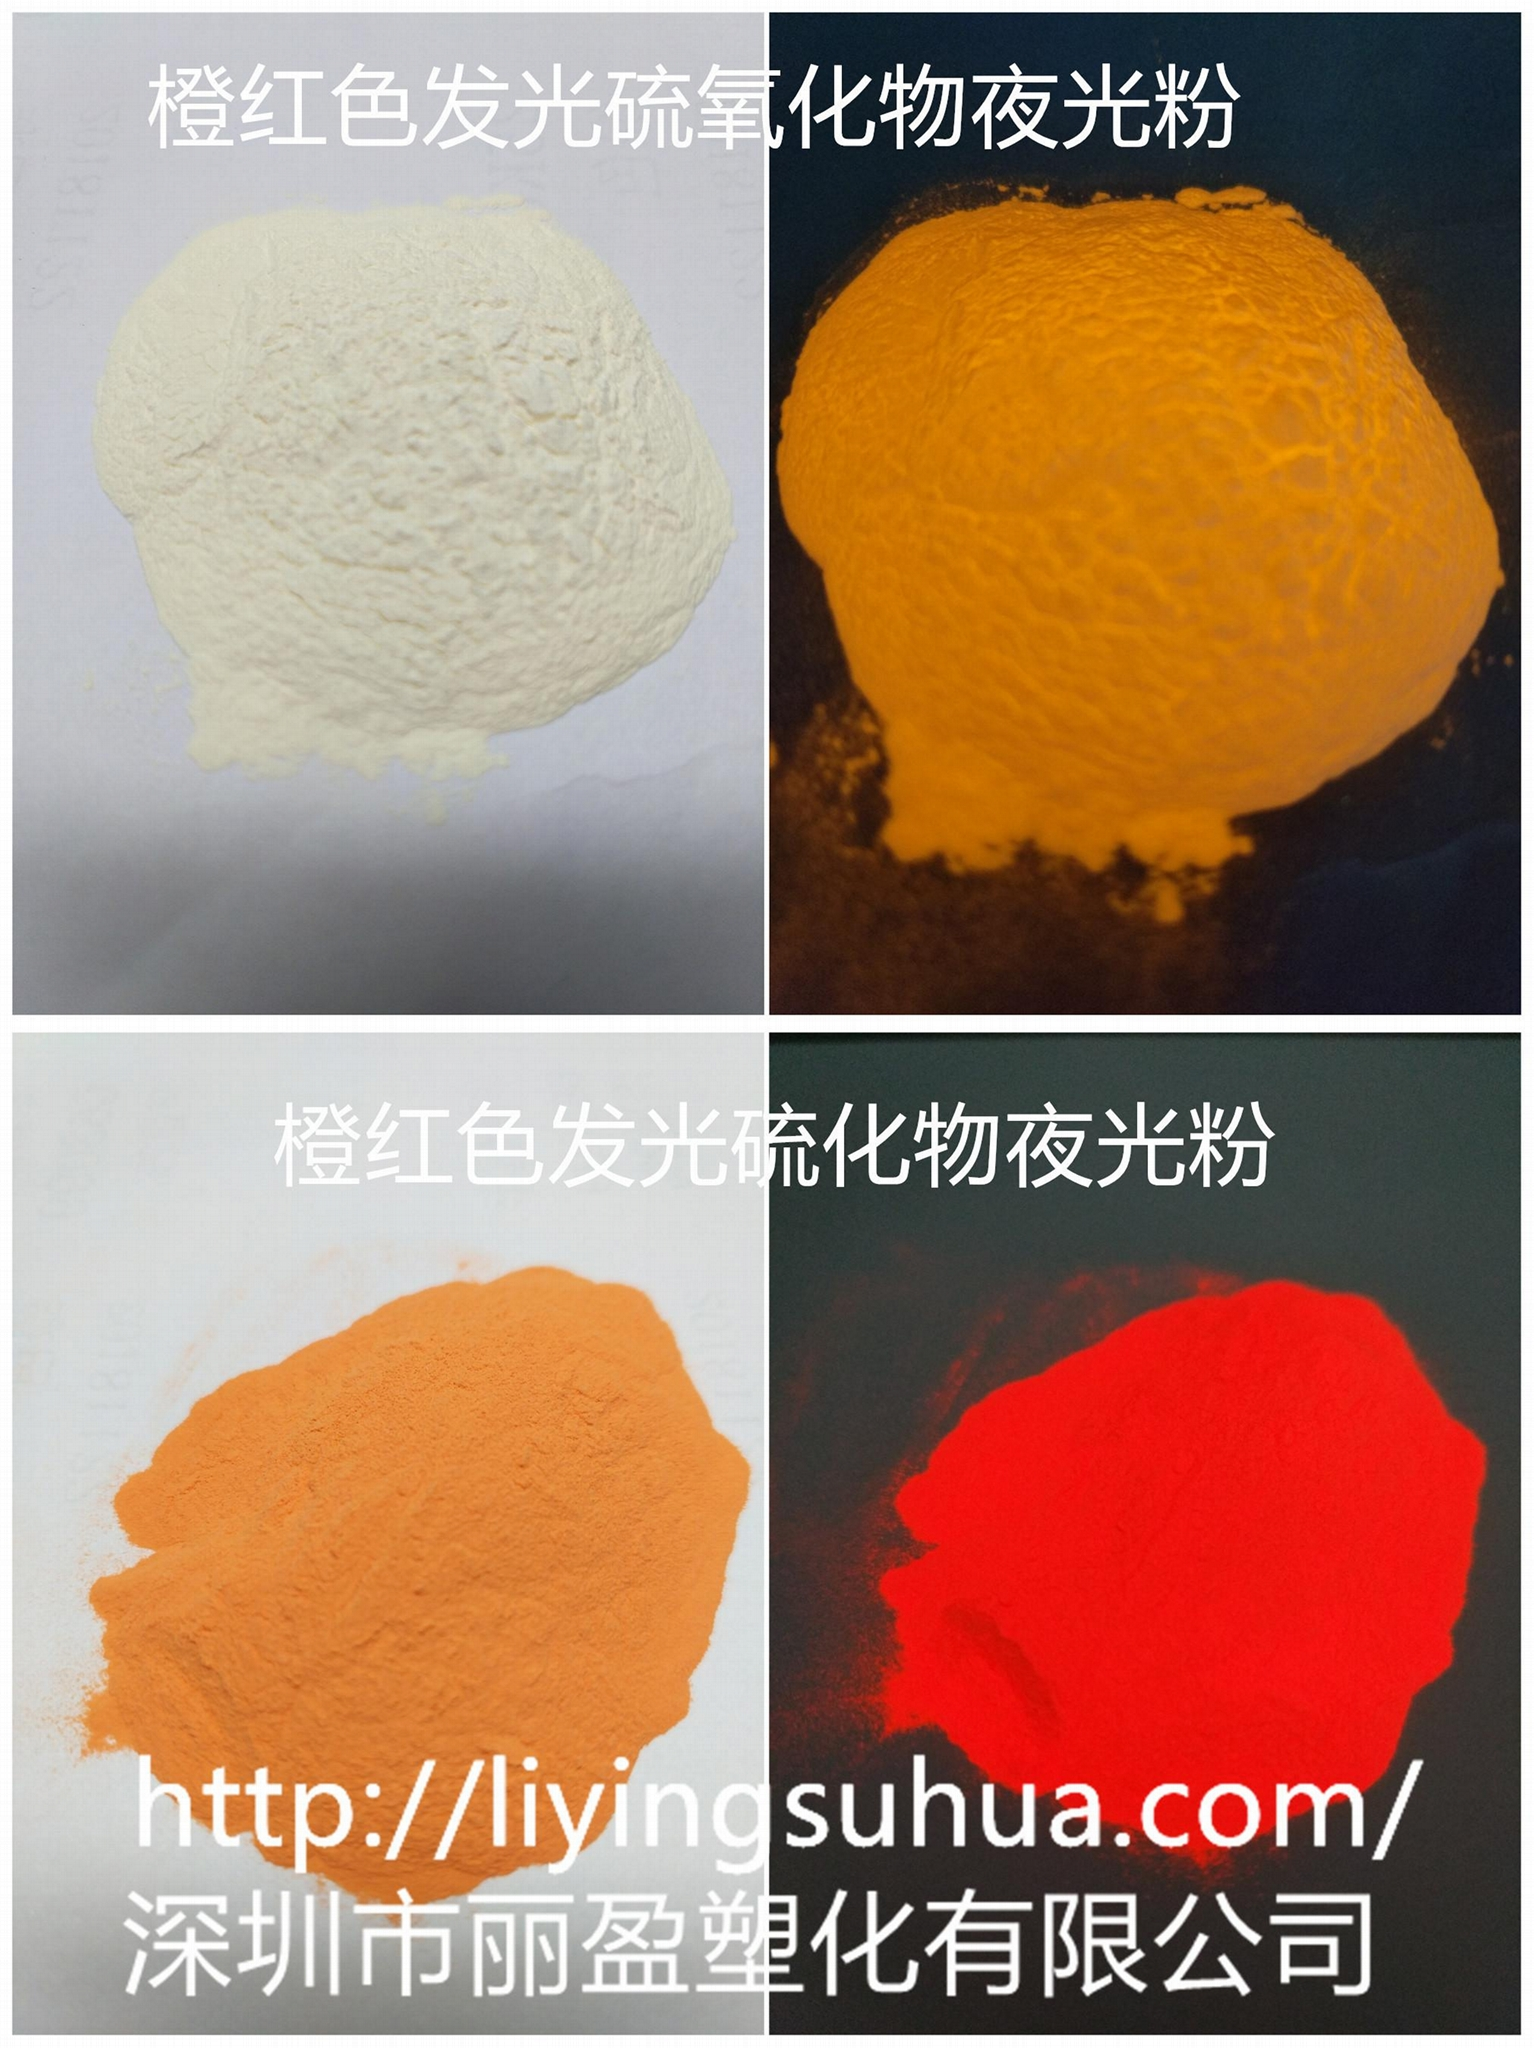 Ink printing injection long and short luminous material 3